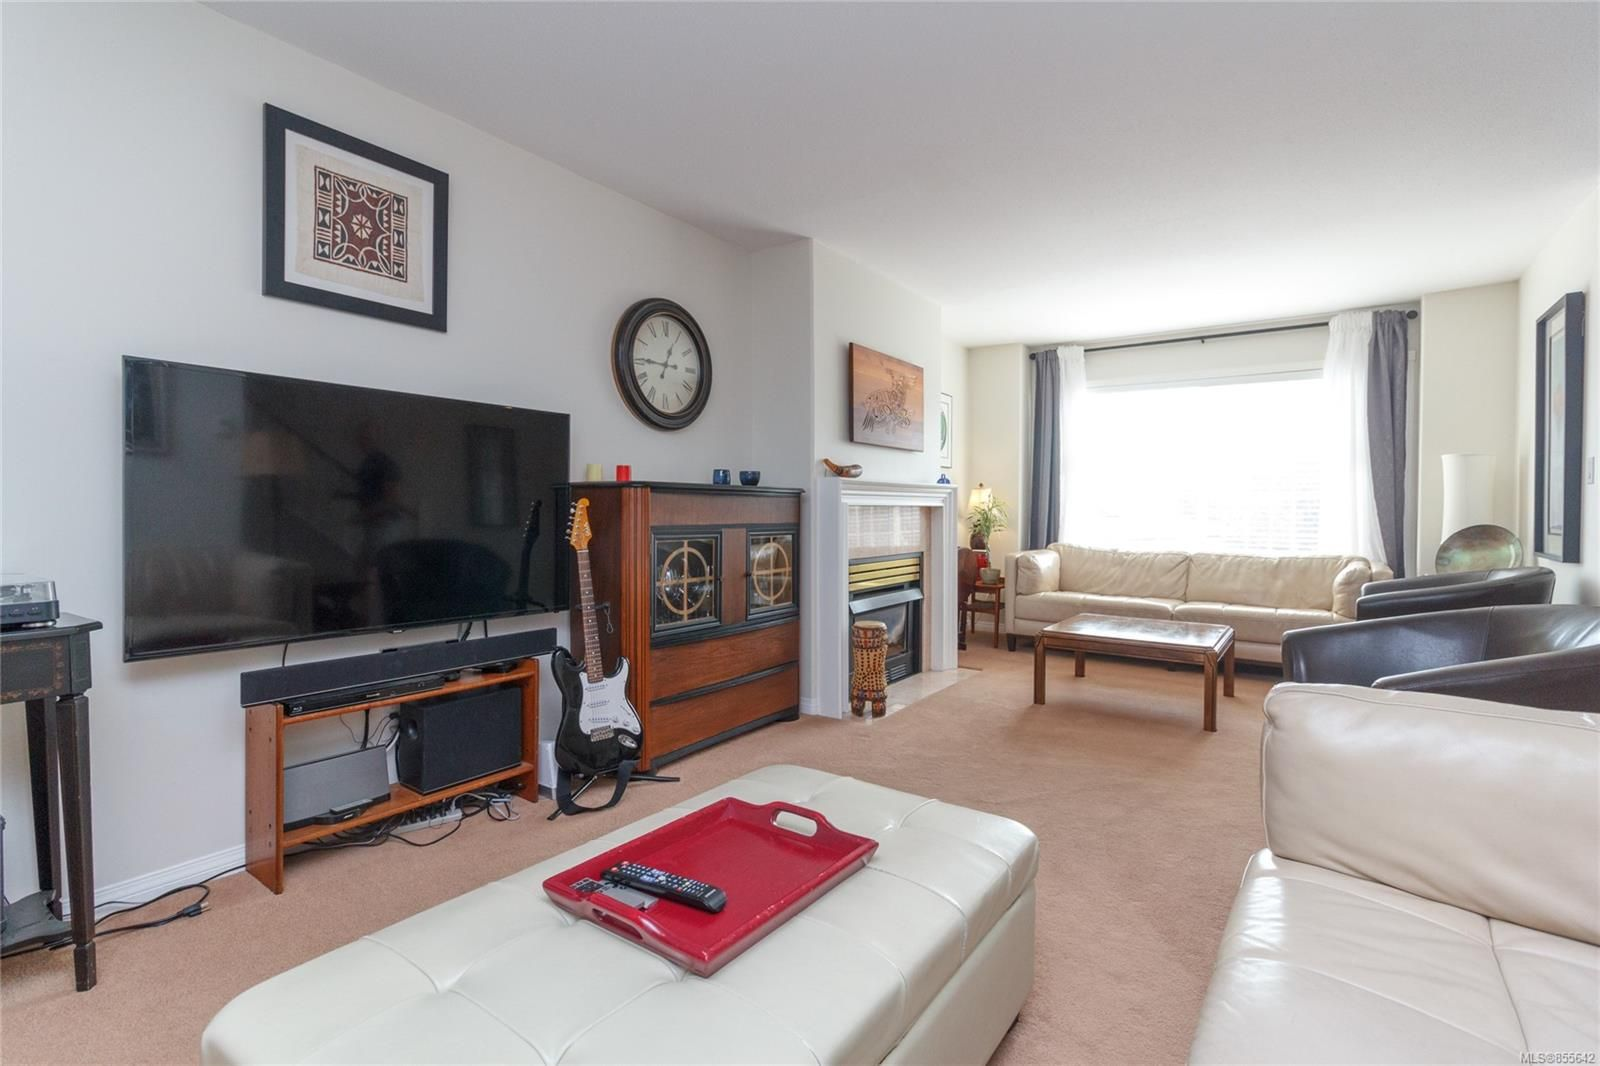 Photo 6: Photos: 52 14 Erskine Lane in : VR Hospital Row/Townhouse for sale (View Royal)  : MLS®# 855642